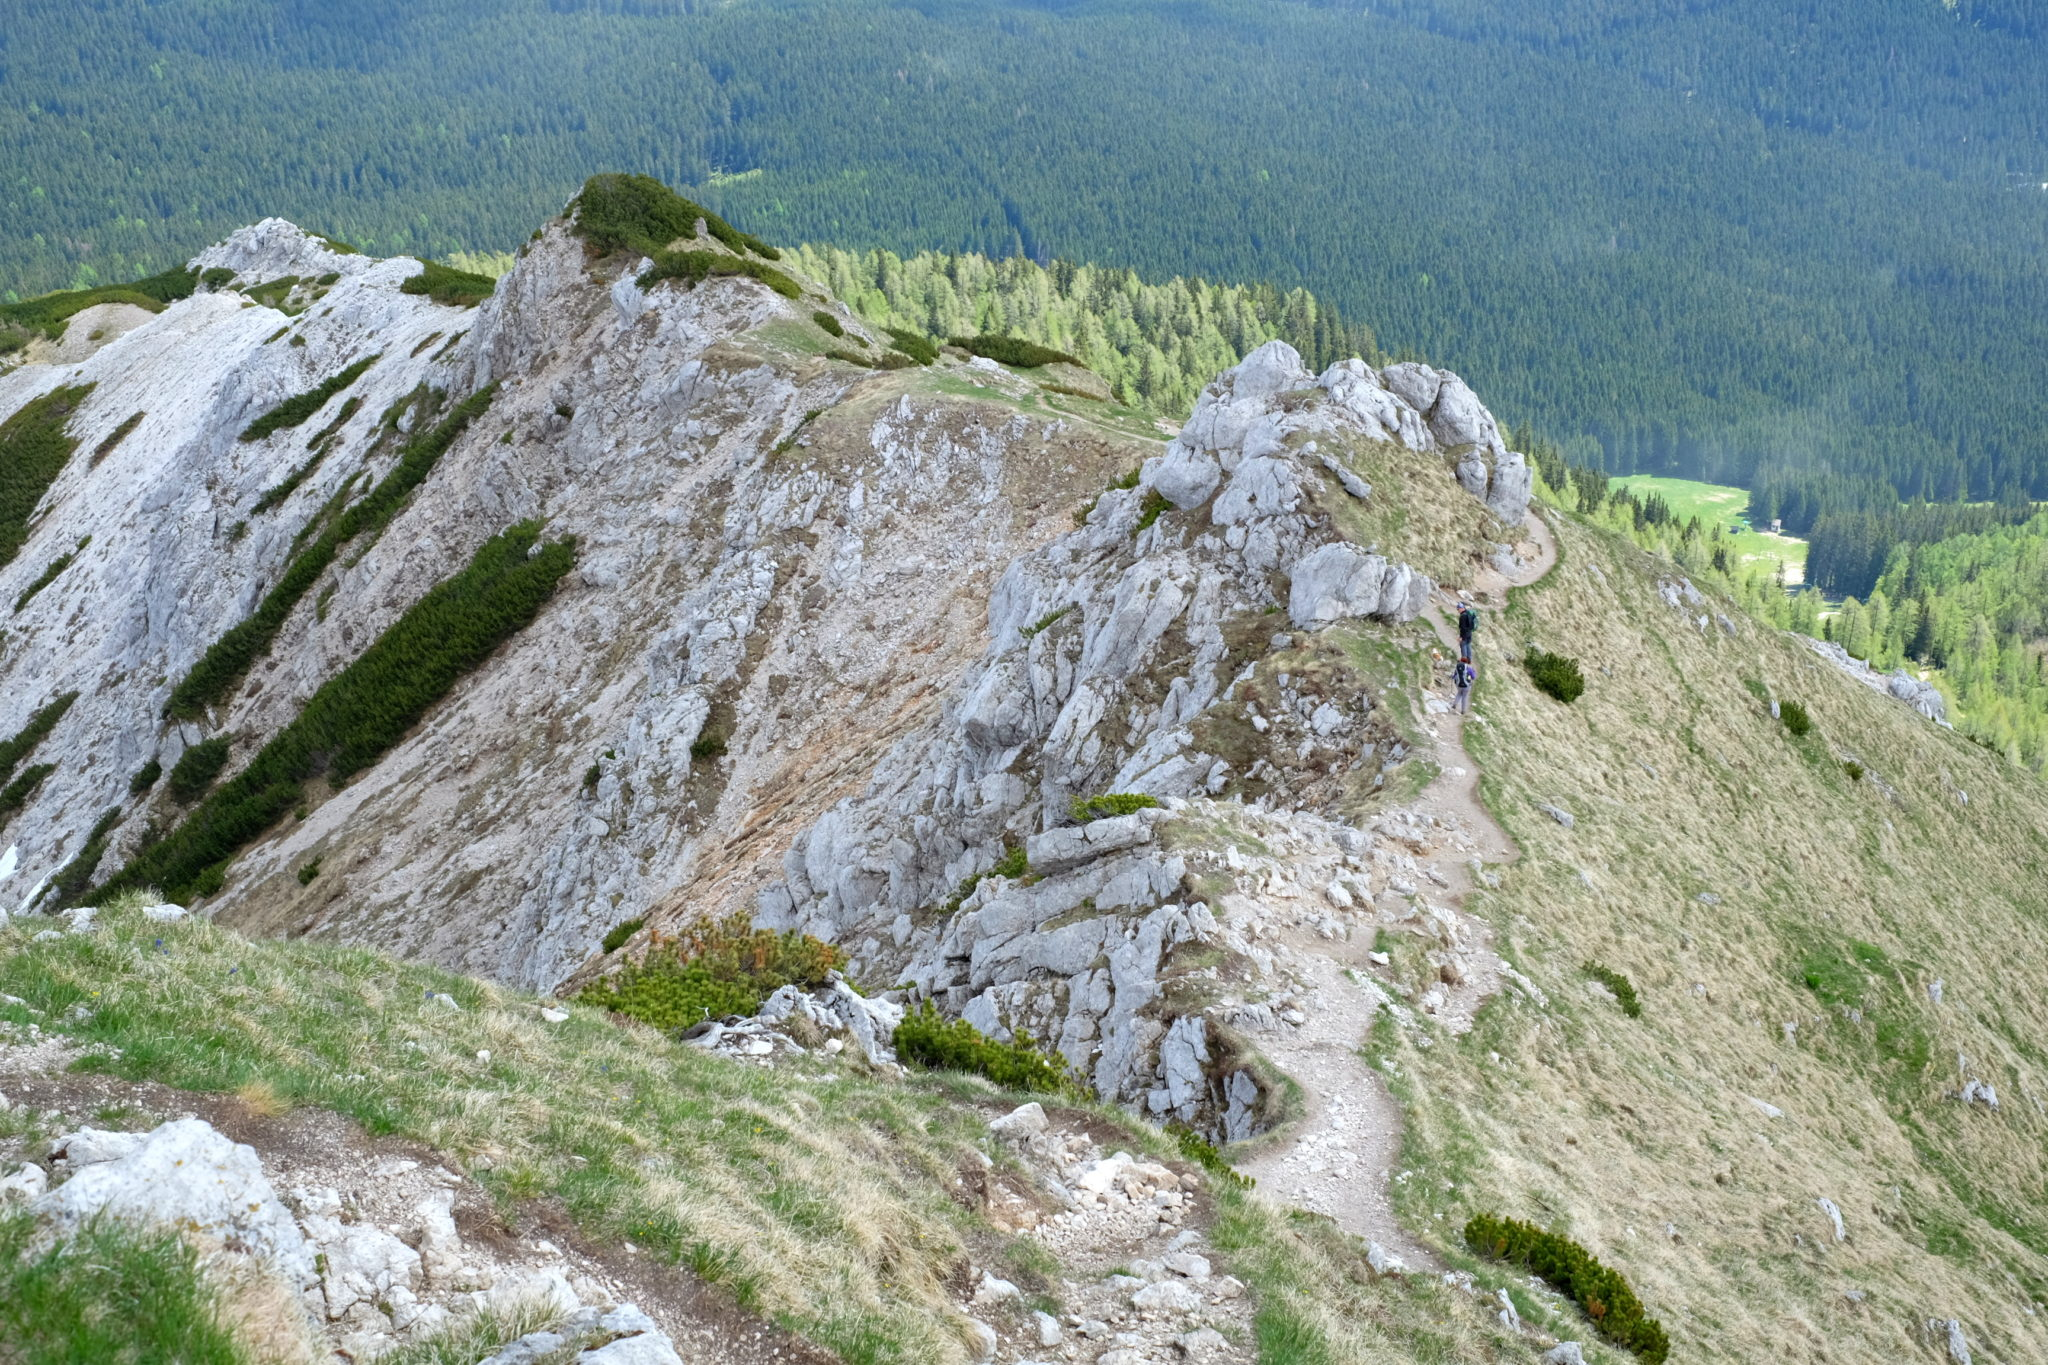 A trail to the top of Viševnik follows the ridgeline